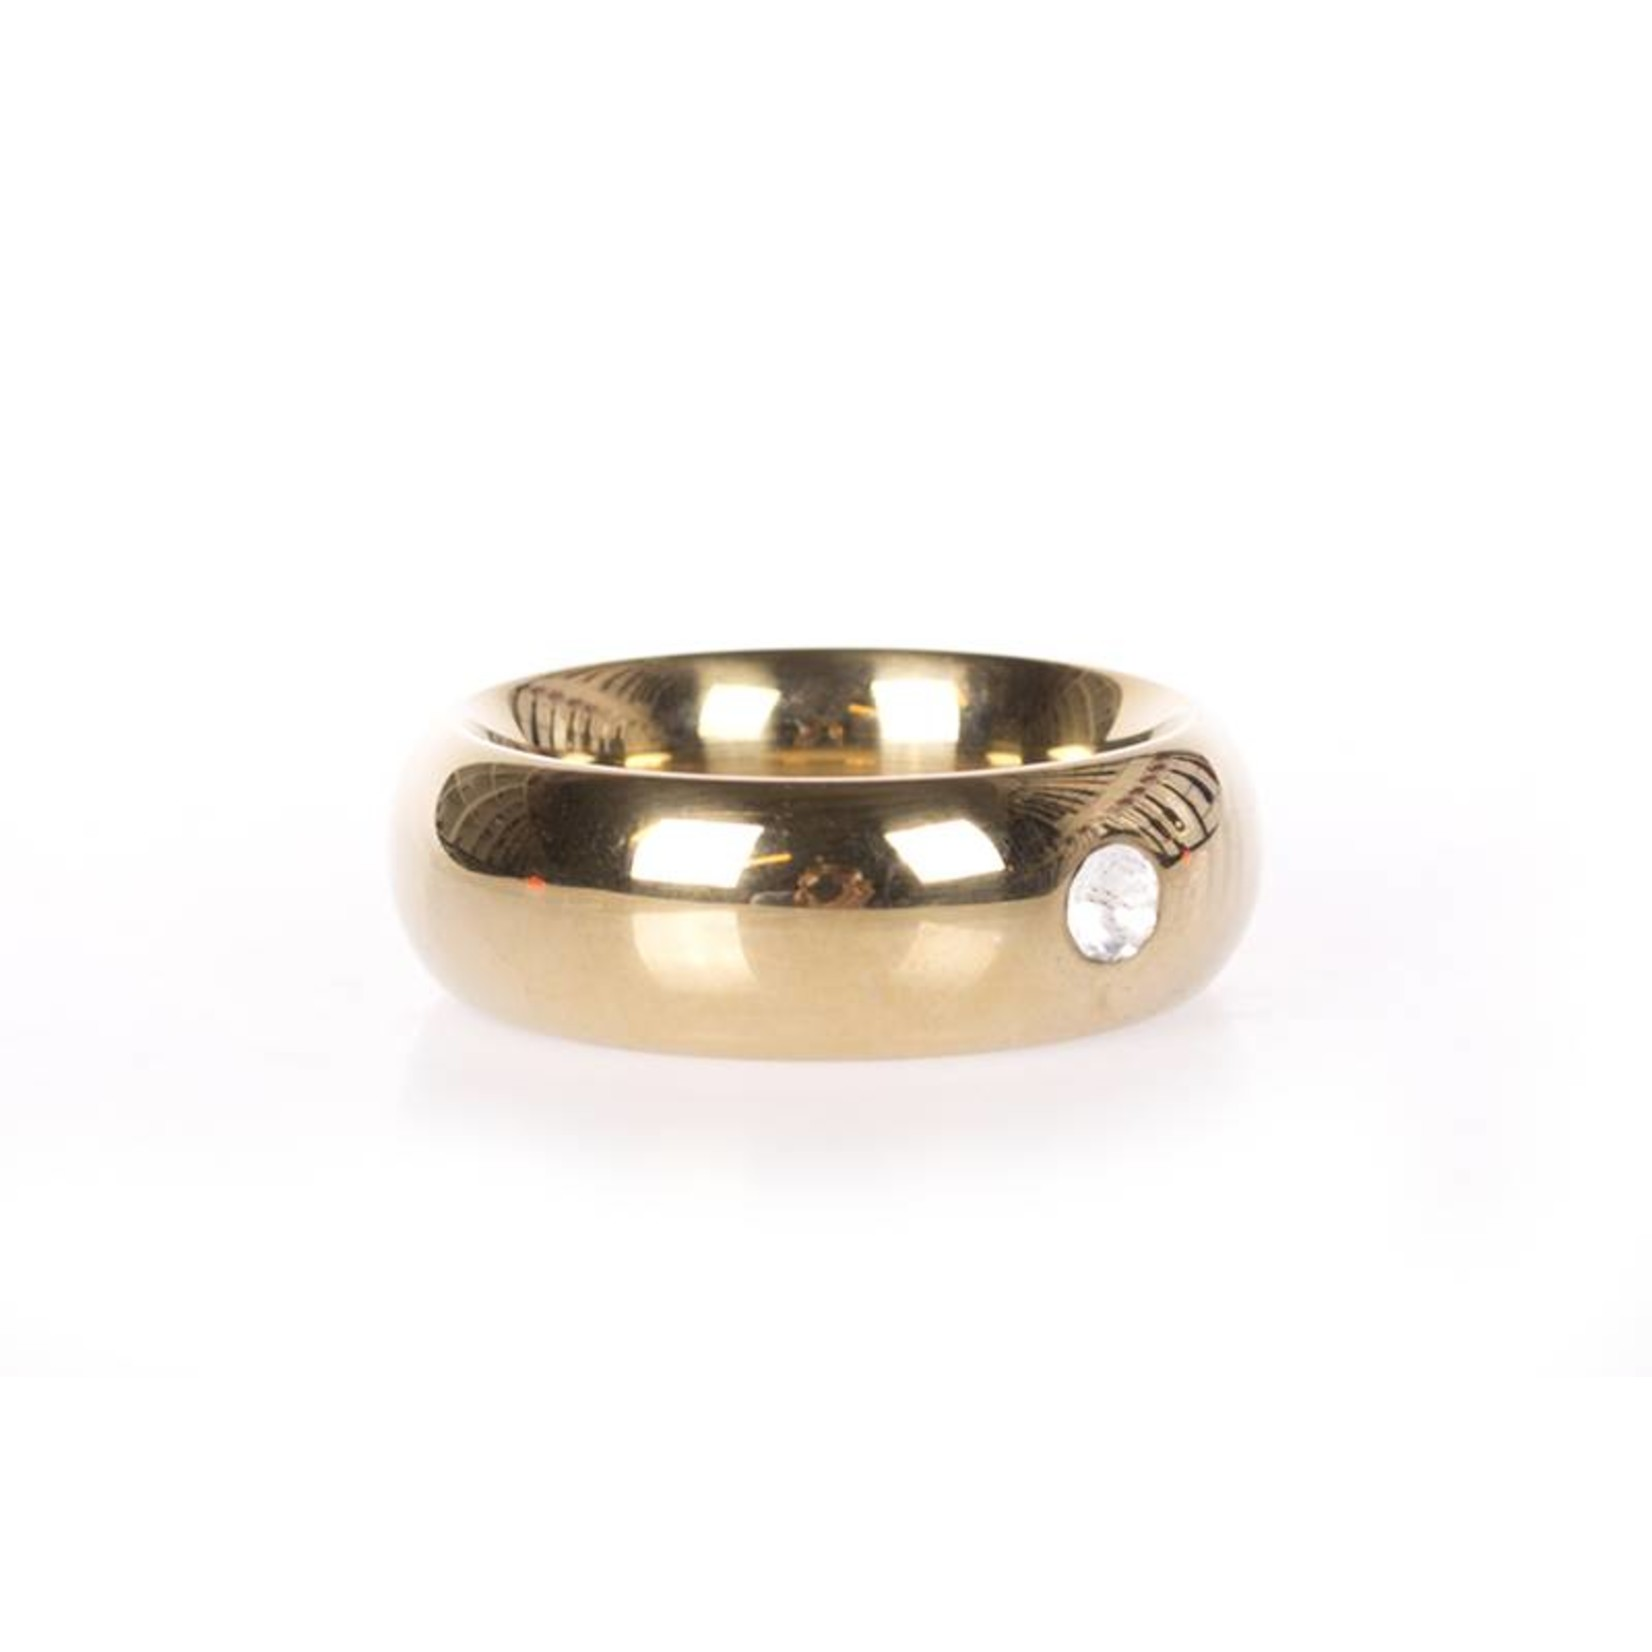 KIOTOS Steel Gold Donut Cockring with Jewel - Thick - 45 mm